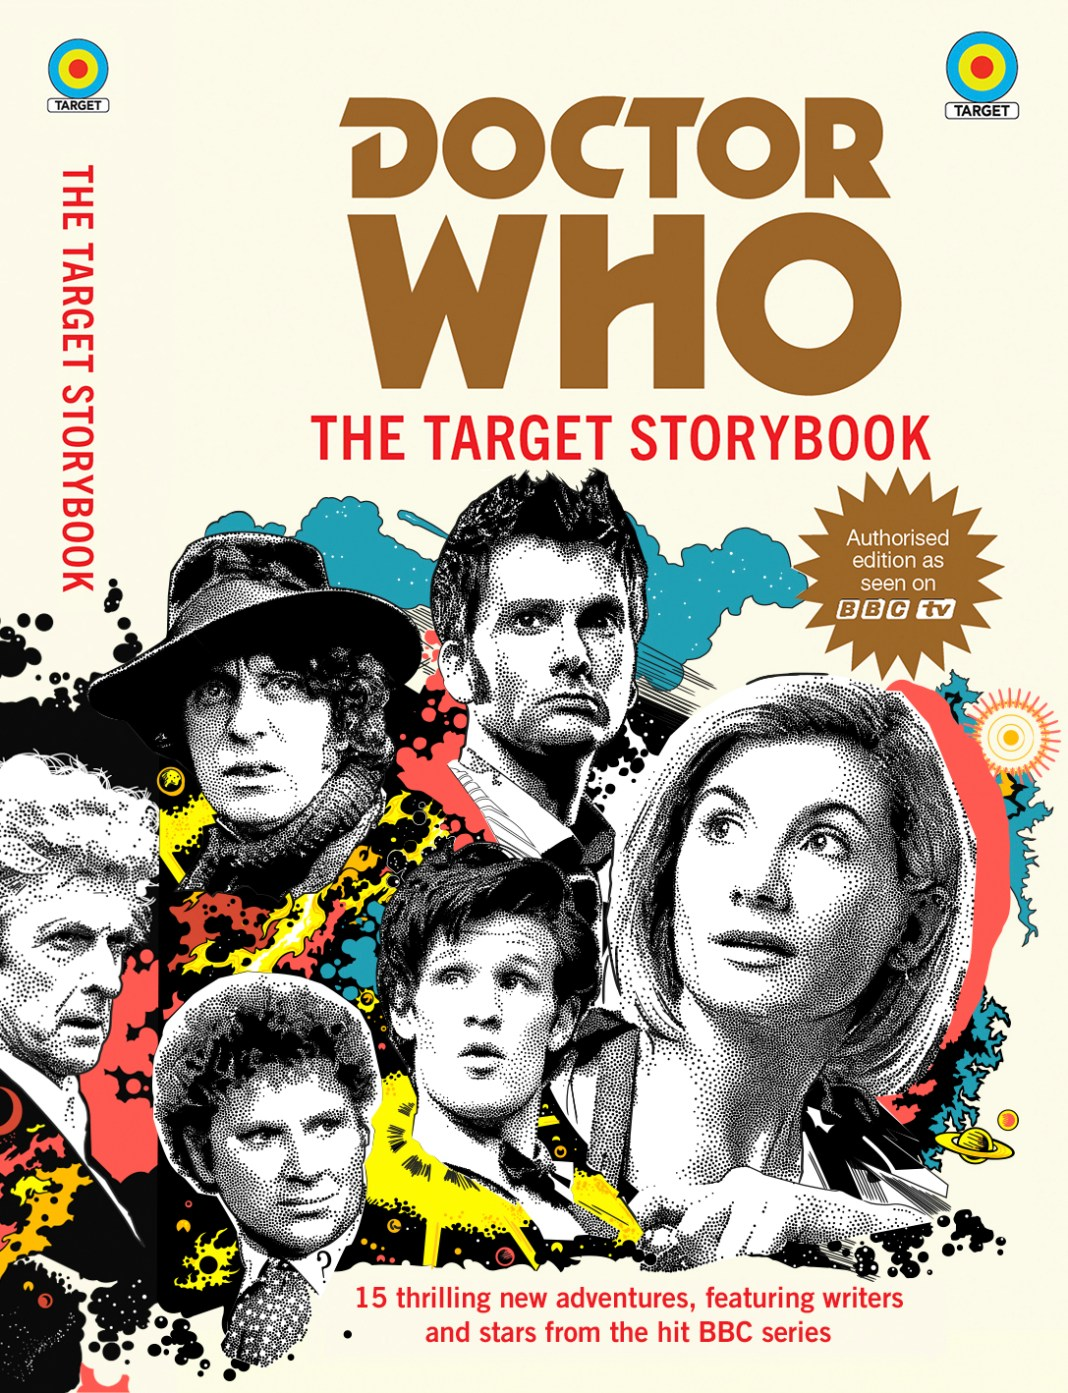 The Doctor Who Target Storybook. Cover by Anthony Dry. (c) BBC Books